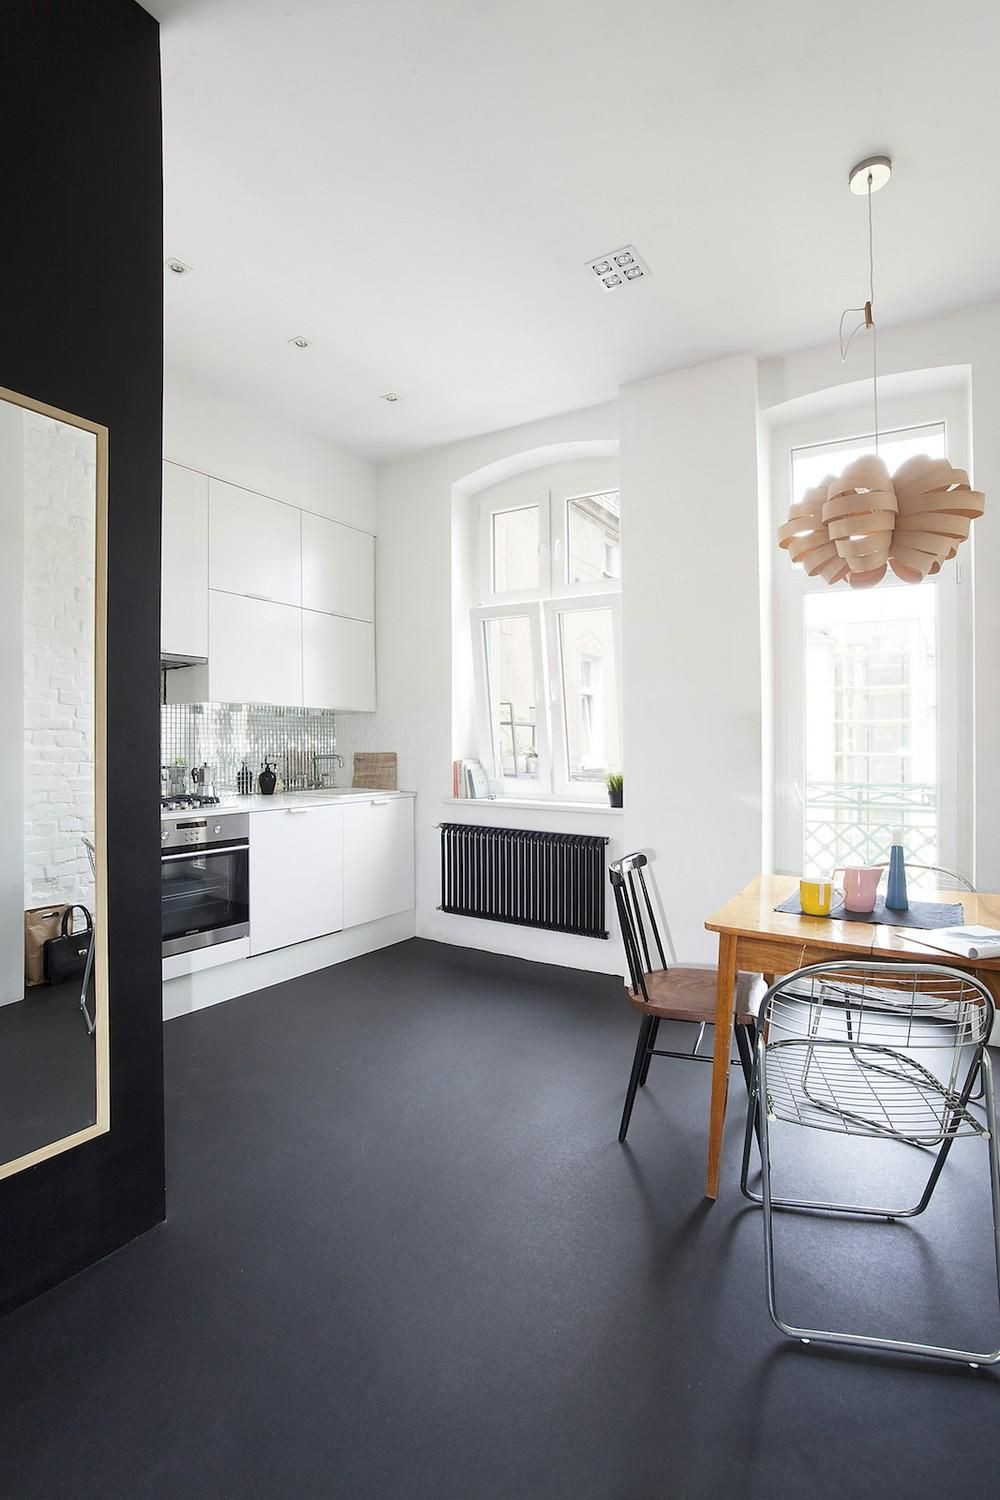 Black Painted Concrete Floor For A White Kitchen I D Like My Garage To Be This